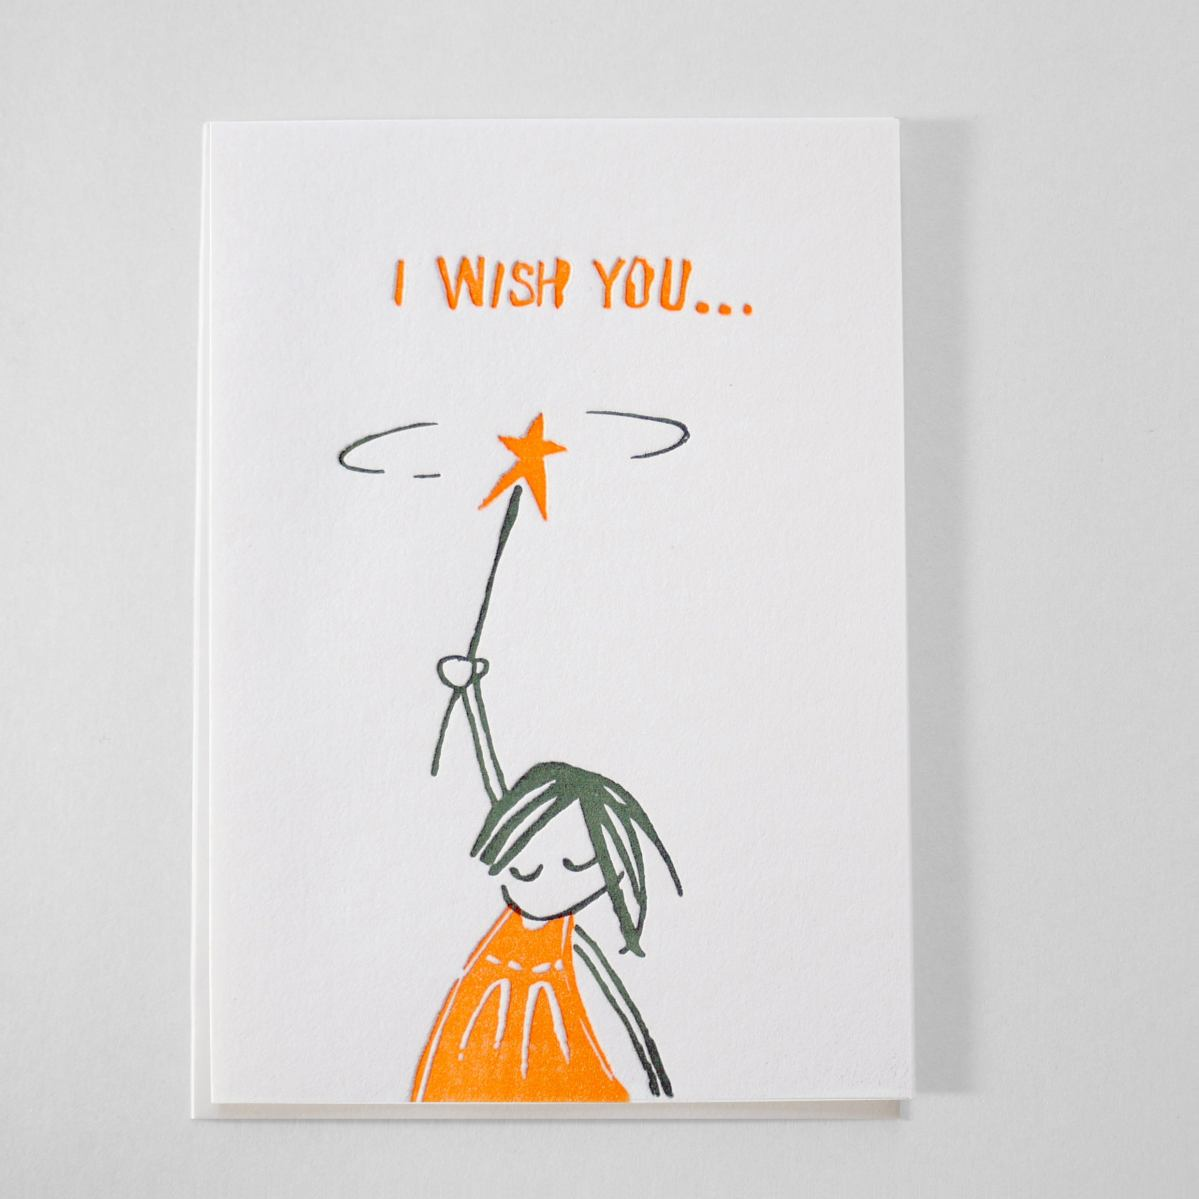 Kikisoso Letterpress Letterpress Birthday Card I Wish You Good Luck Card Best Wishes